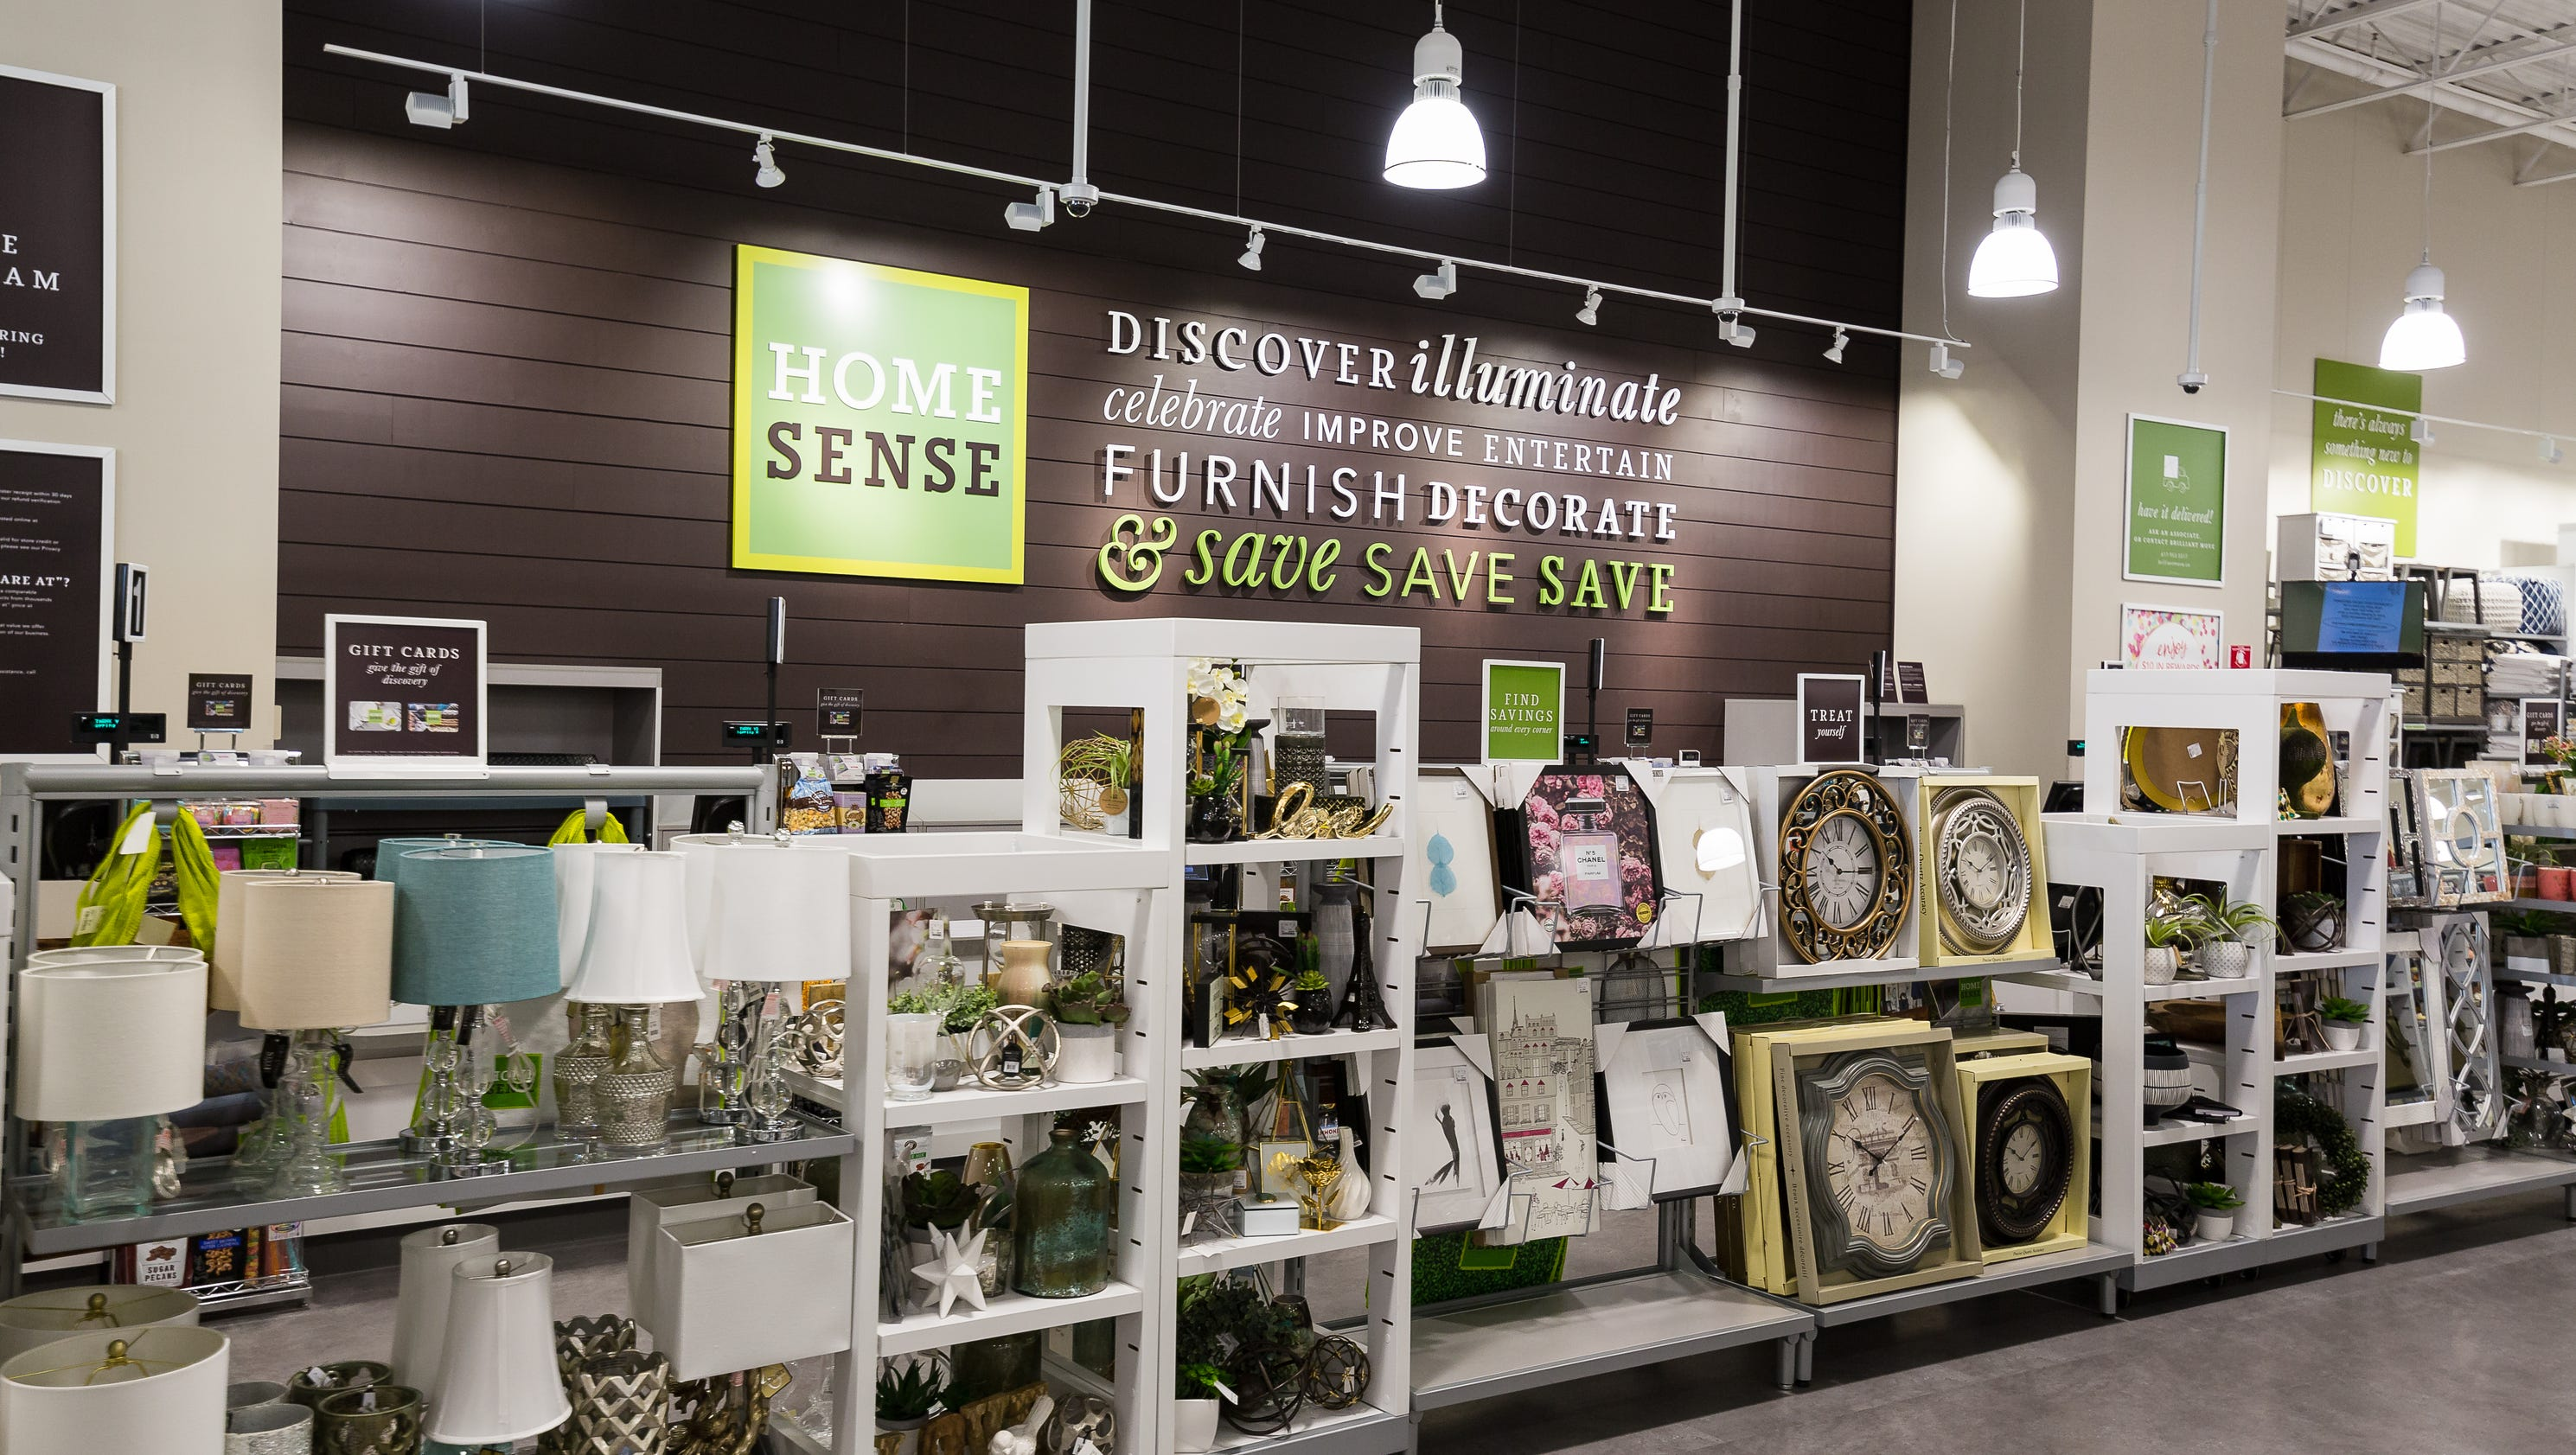 homesense sister store to homegoods coming to new jersey